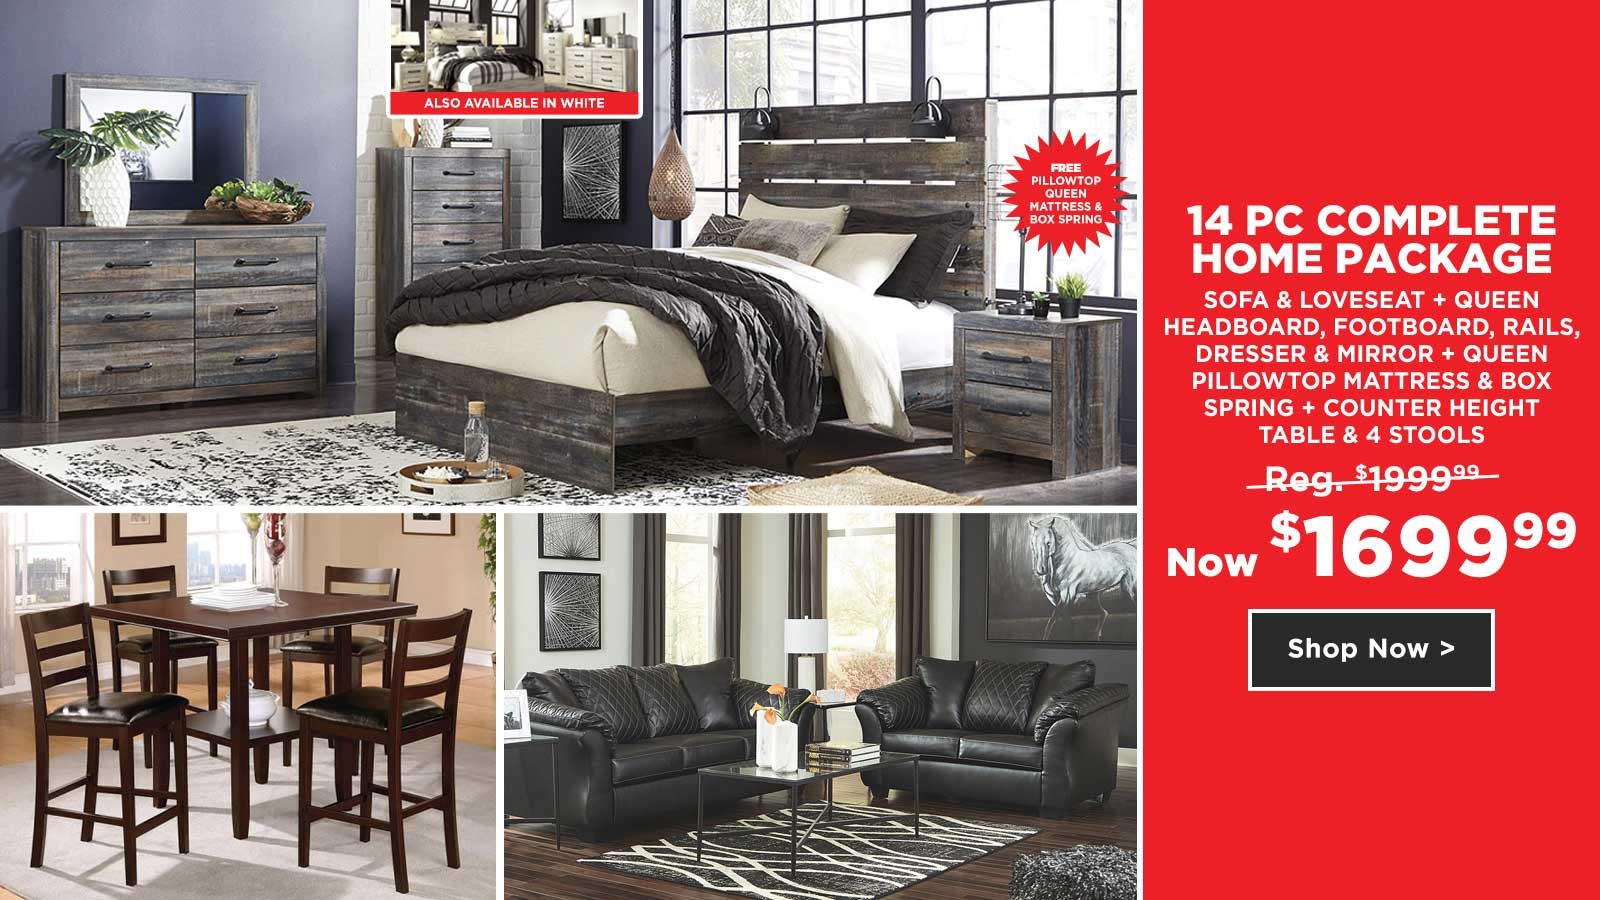 14pc Complete Home Package $1699.99